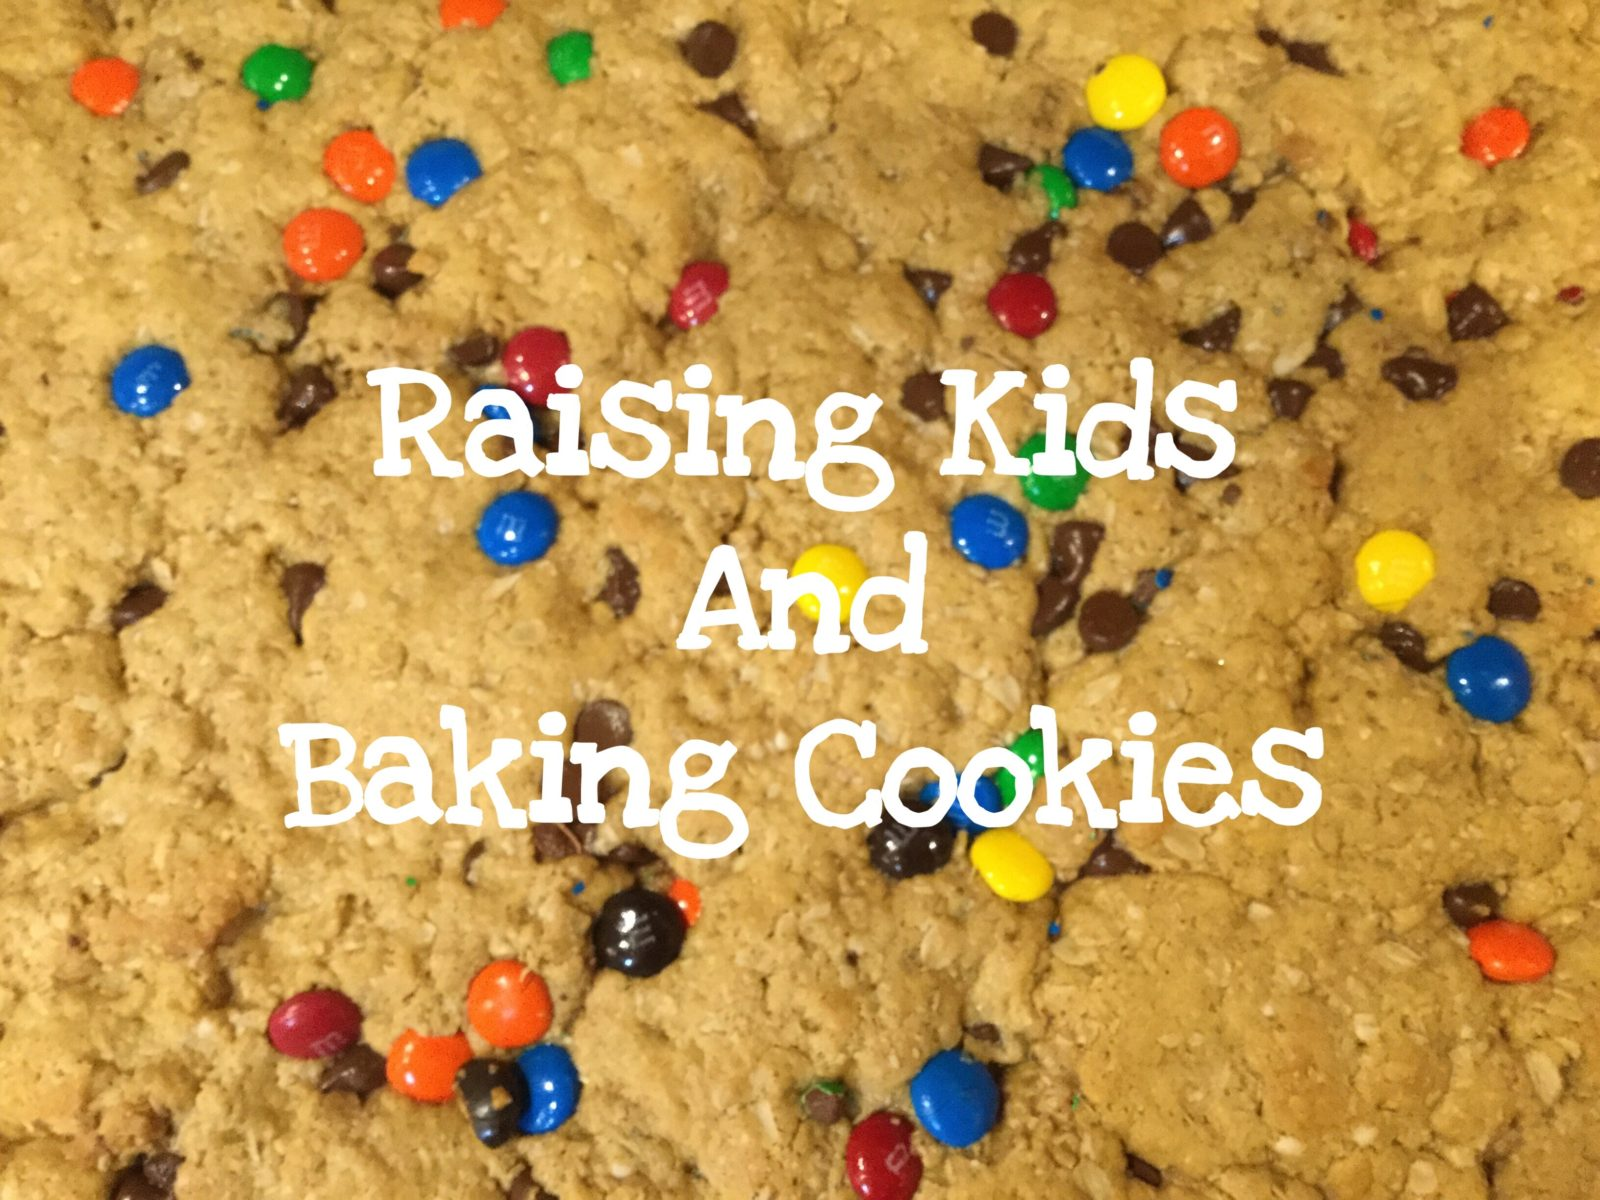 Raising Kids and Baking Cookies